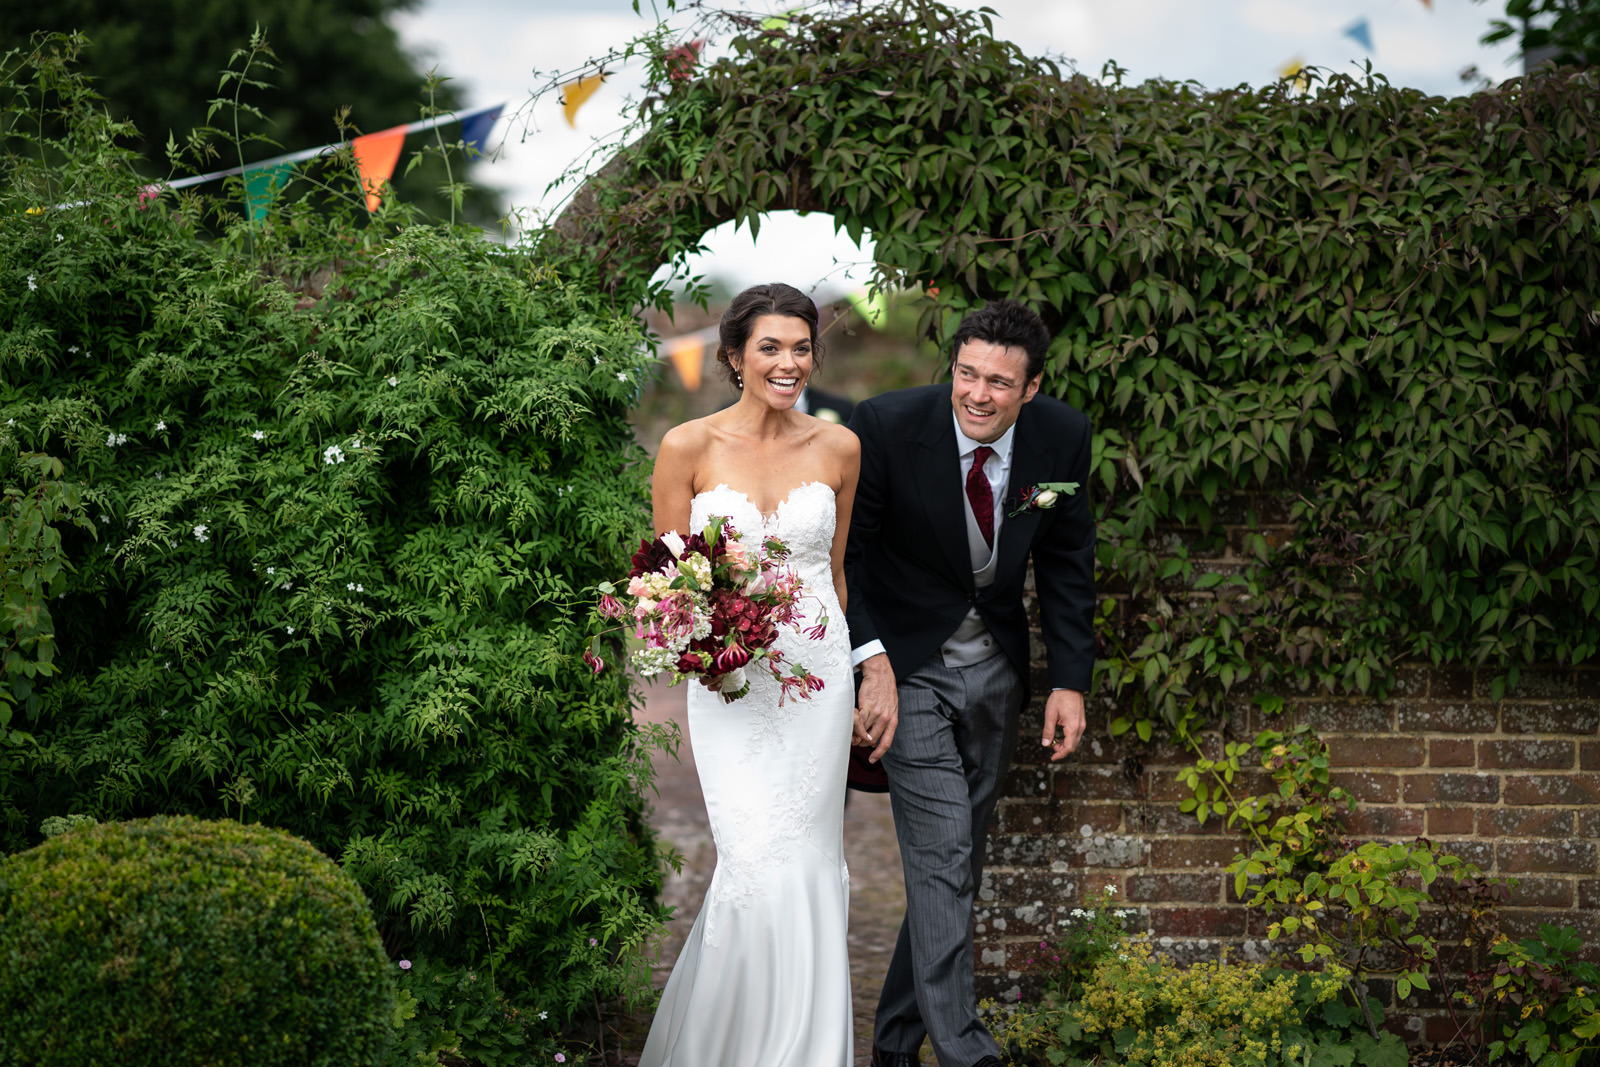 Couple arrive at their wedding with bunting